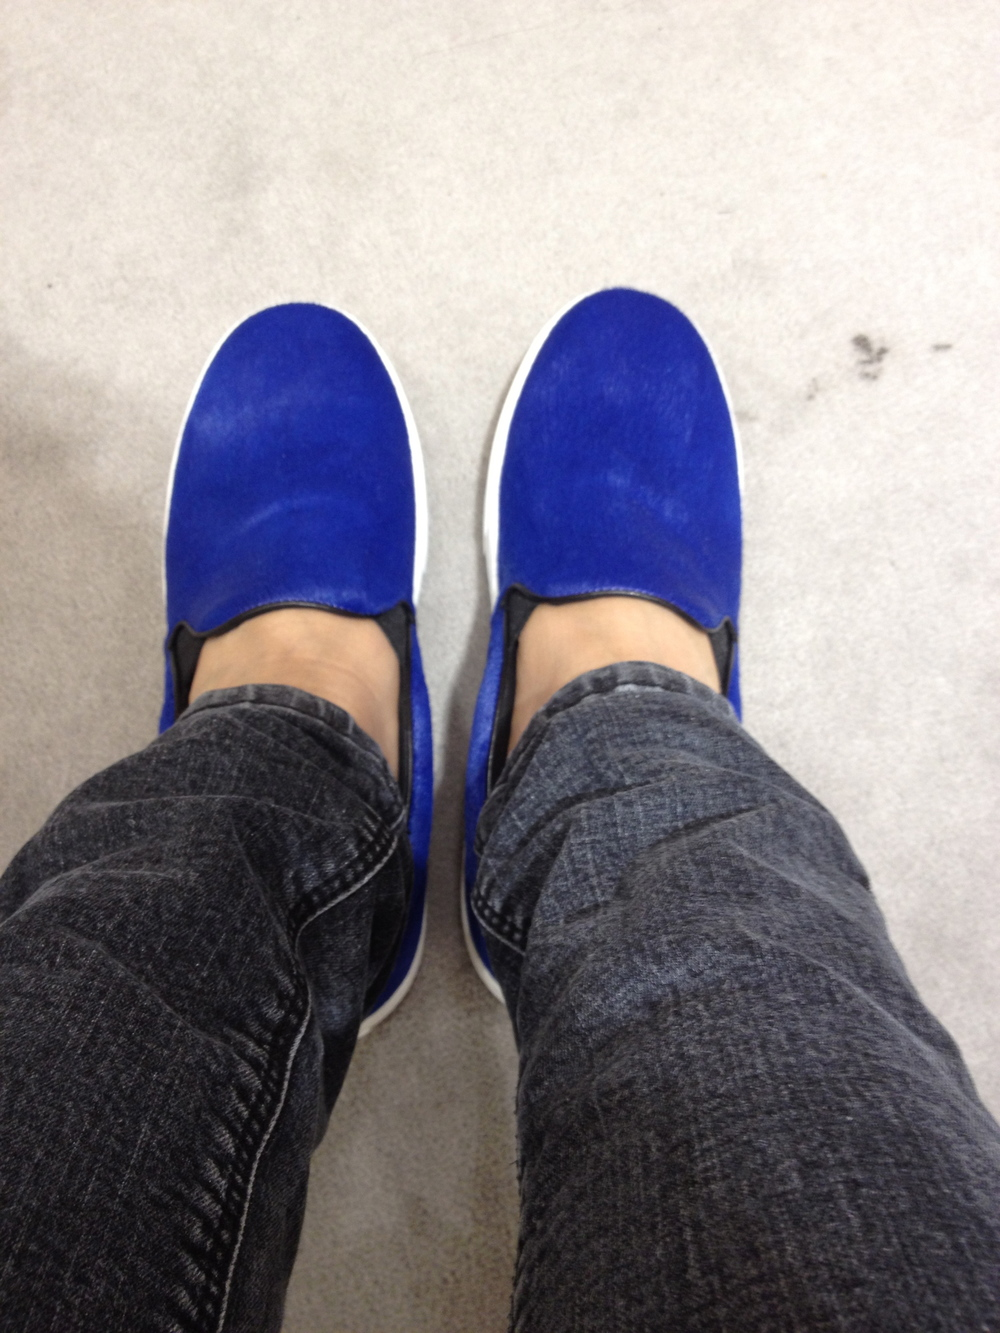 Celine Loafers